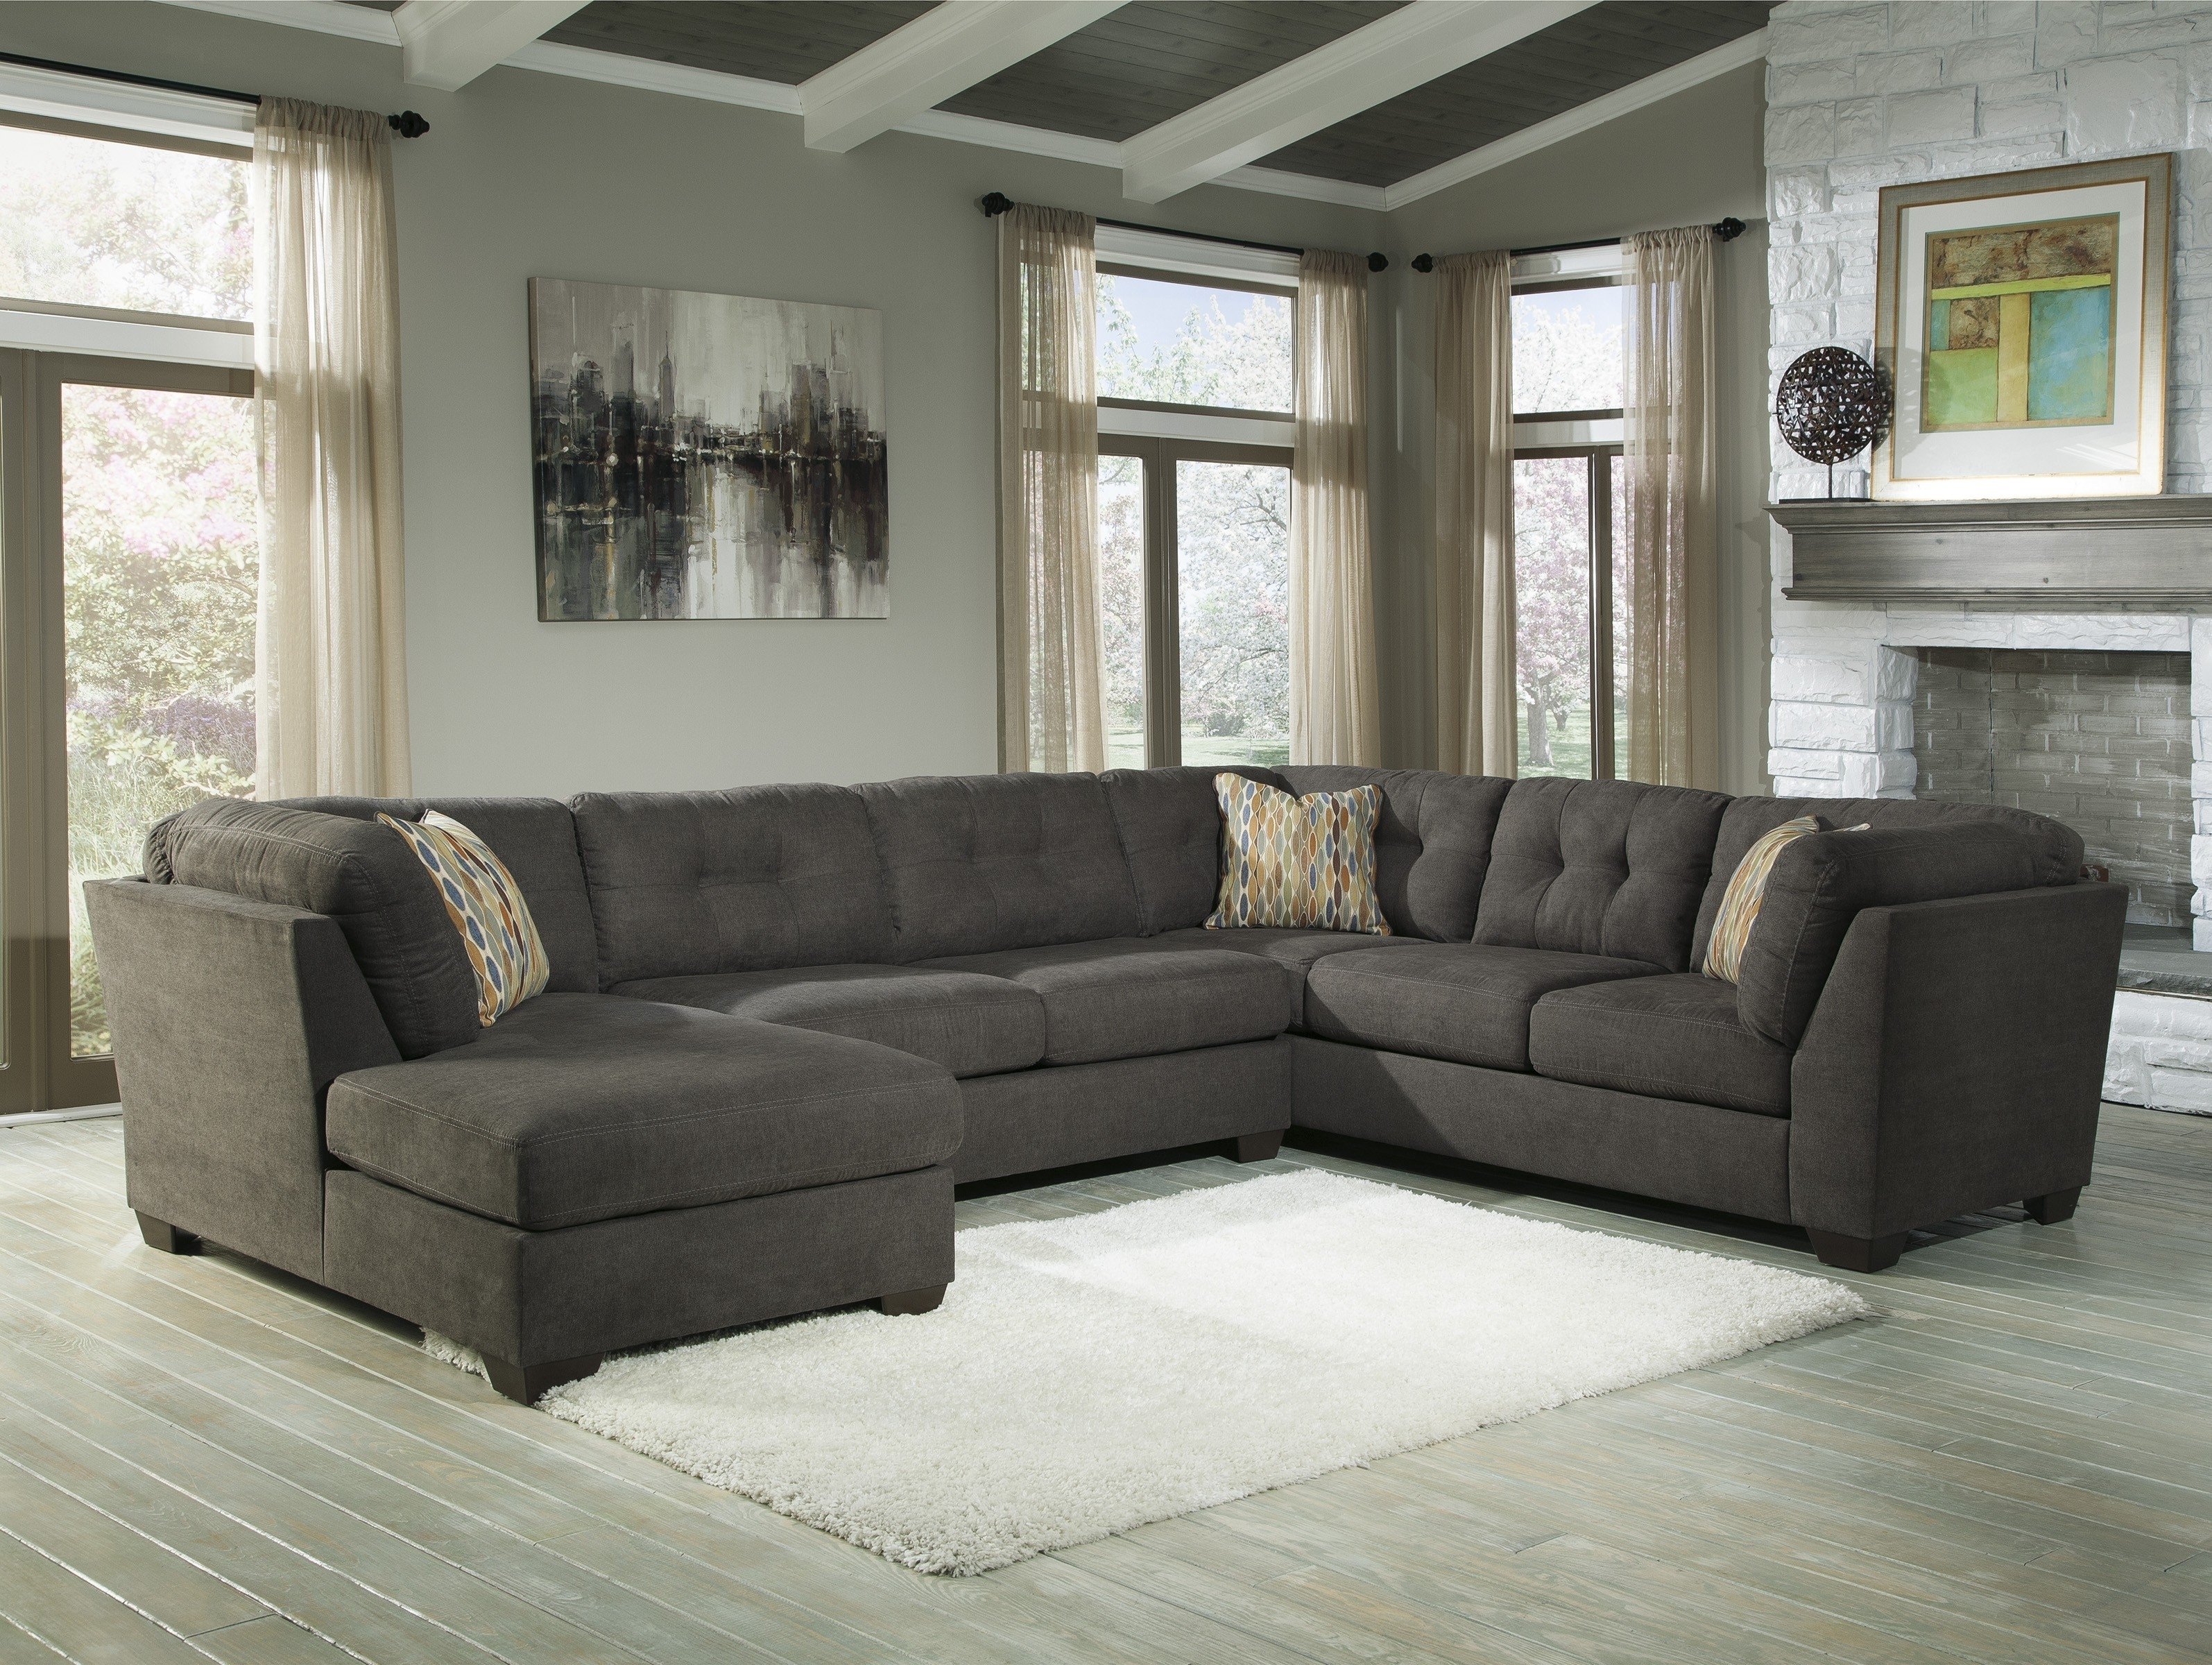 3 Piece Sectional Sofa Dimensions | Baci Living Room Throughout Malbry Point 3 Piece Sectionals With Raf Chaise (View 21 of 25)